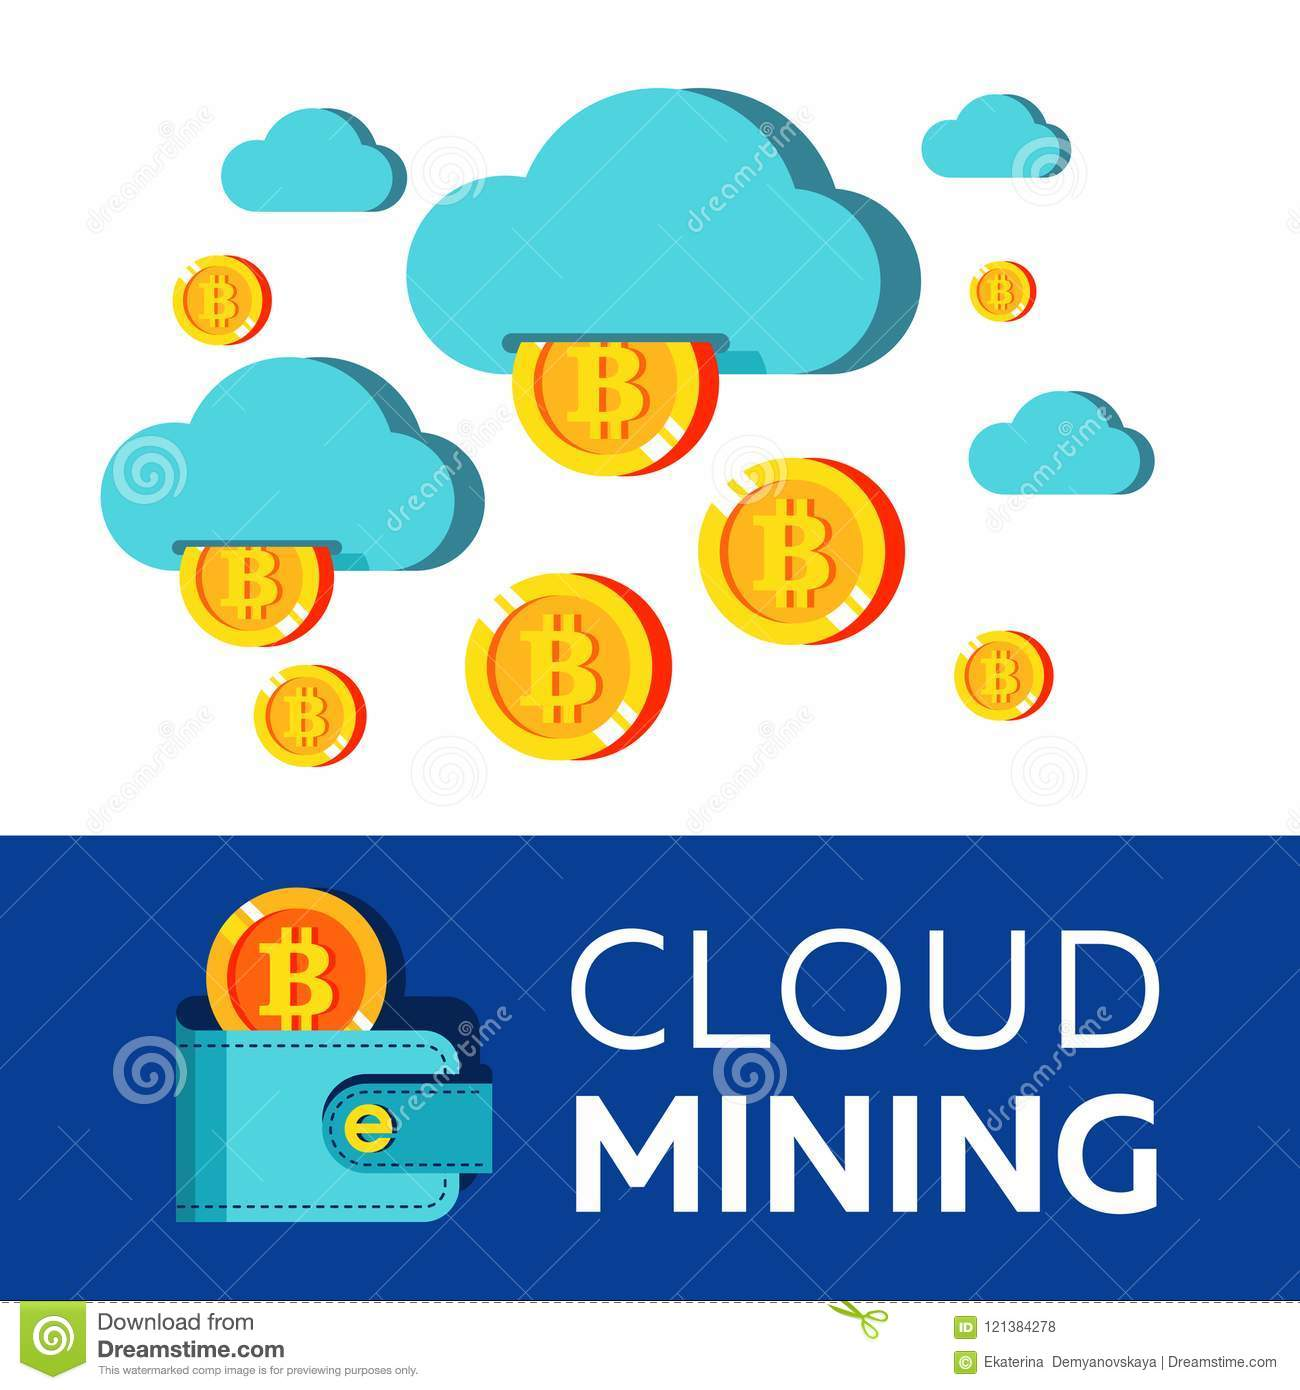 what is cryptocurrency cloud mining